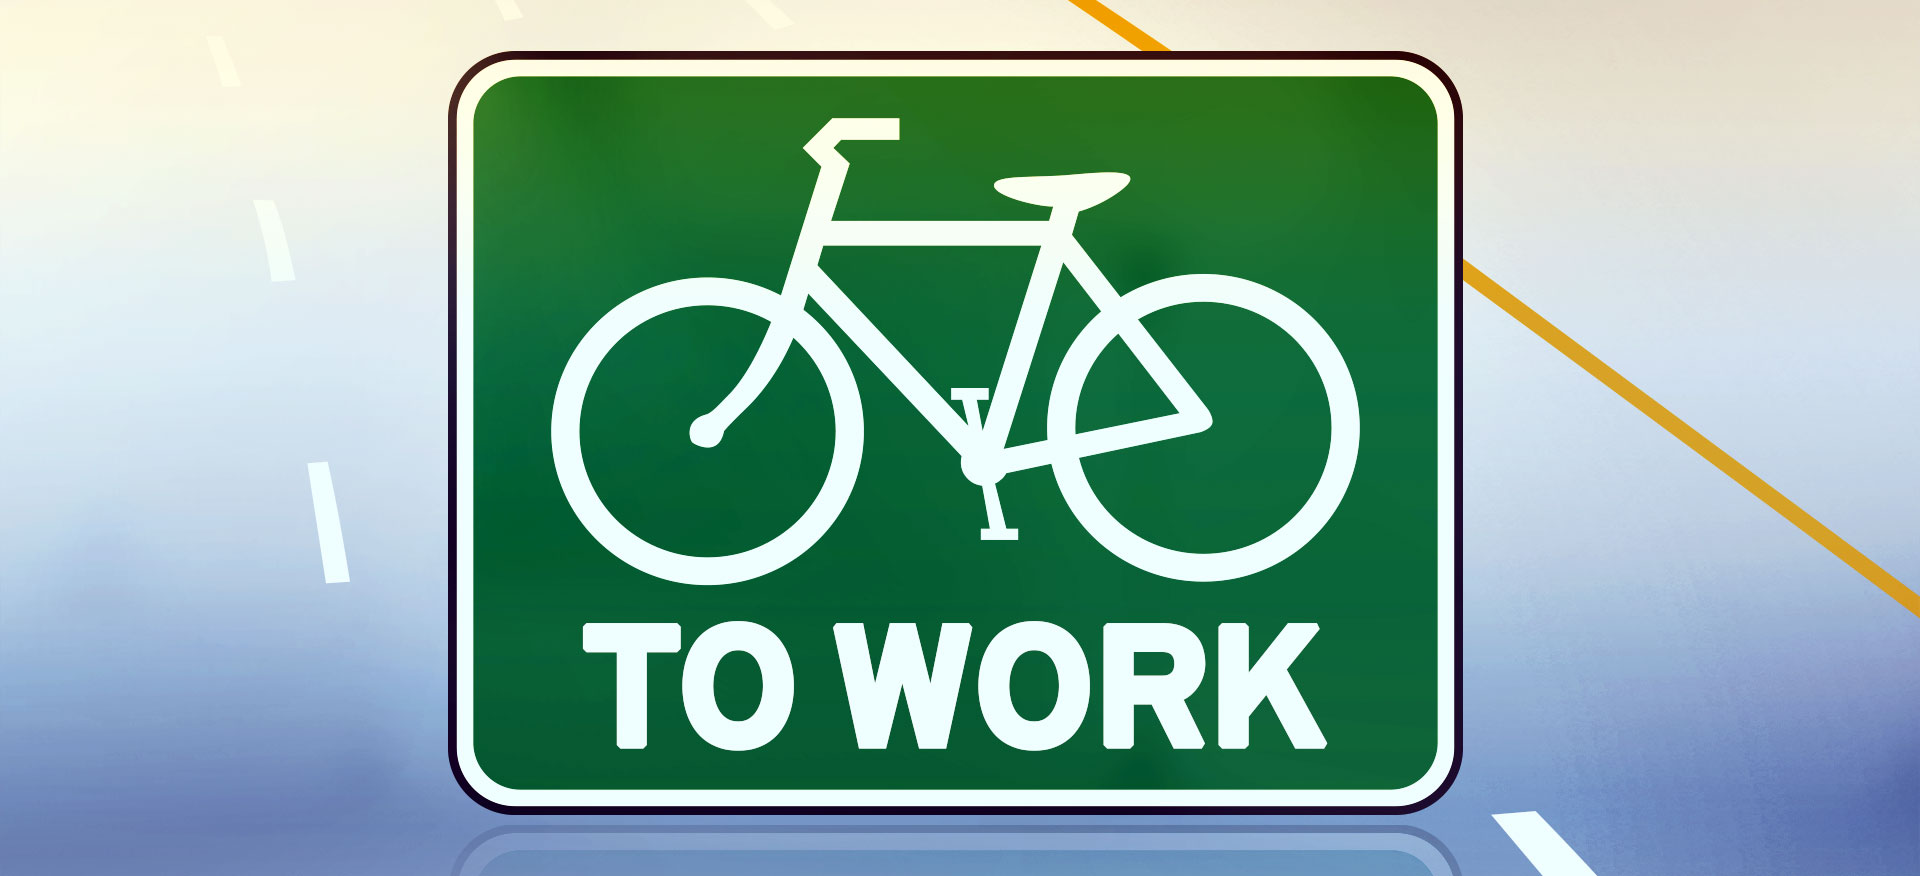 Bike To Work Week Promotes Riding To Office